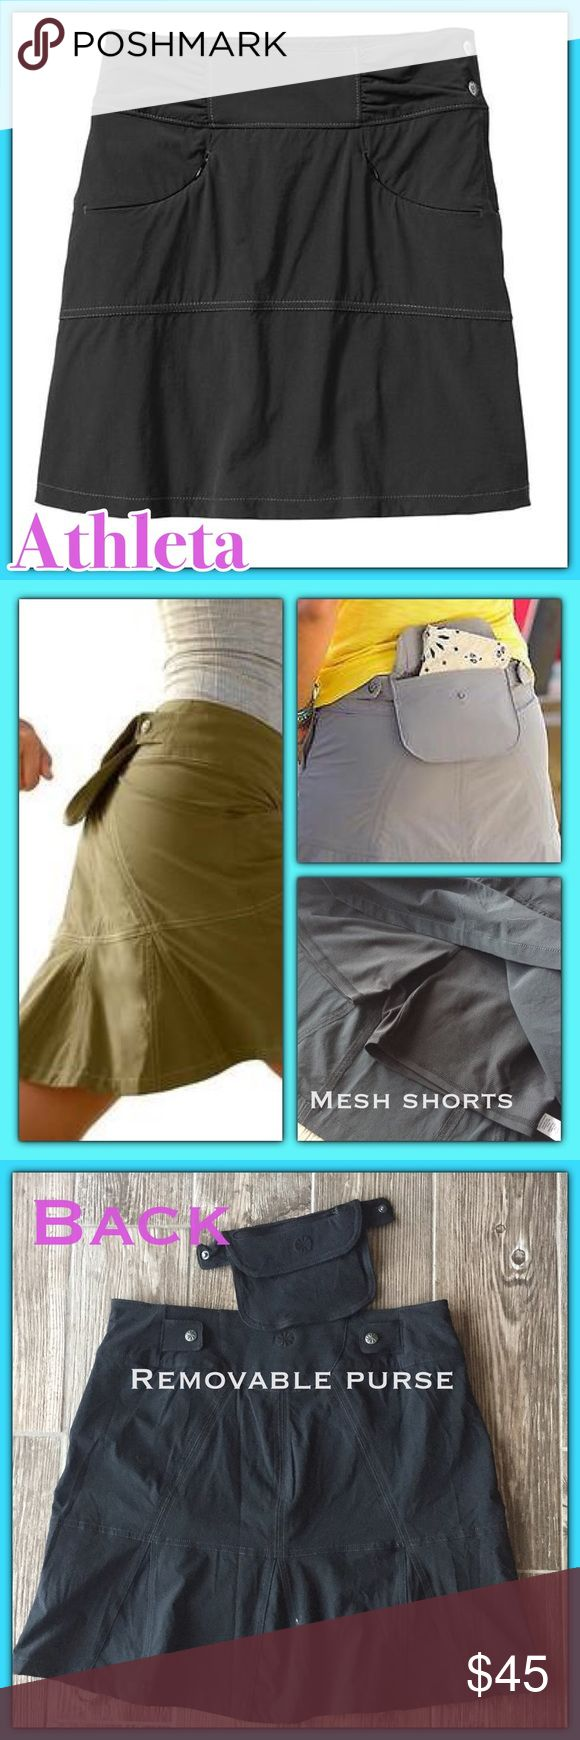 🍄Triple Threat Athleta Hit The Trail Skort BLK. ❤️❤️ New Hit The Trail Skort - Black❤❤ Super cute all purpose skirt great for hiking, traveling or a day away from home. NEW DESCRIPTION: The lightweight, abrasion-resistant ripstop skort that's made for the great outdoors and features a rear passport/map pouch that snaps off into a purse. Skirt 85% nylon, 15% spandex, shorts 90% polyester, 10% spandex. ❤️ 📦 Ship same or next day 📦❤️ Cristadoll ❤️ Please use offer button Athleta Skirts